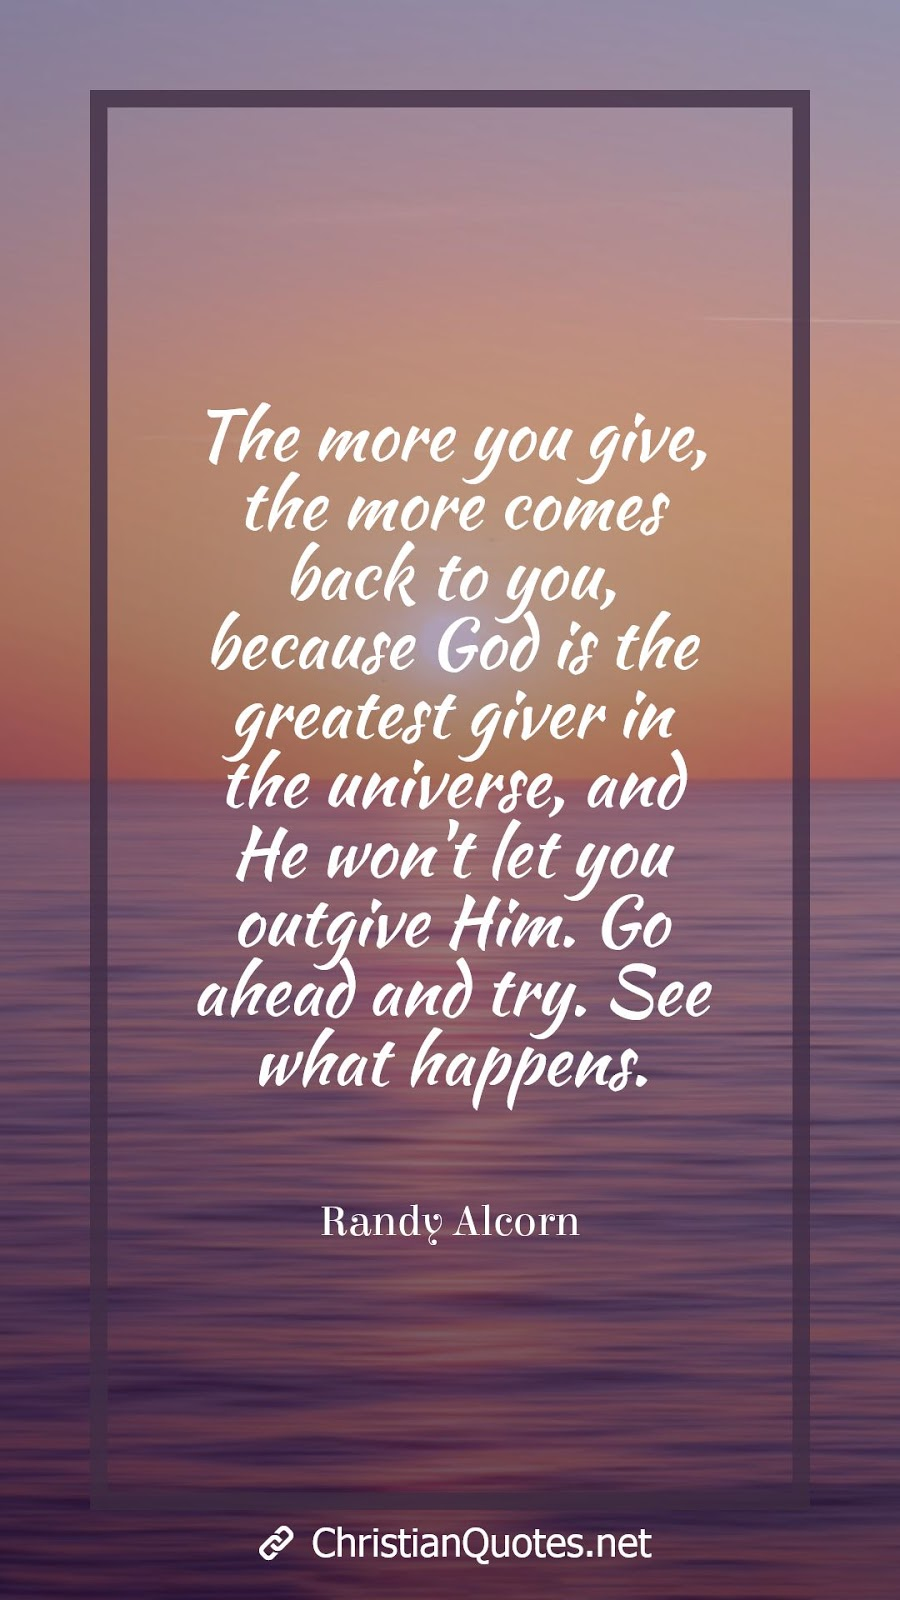 The more you give, the more comes back to you, because God is the greatest giver in the universe, and He won't let you outgive Him. Go ahead and try. See what happens.